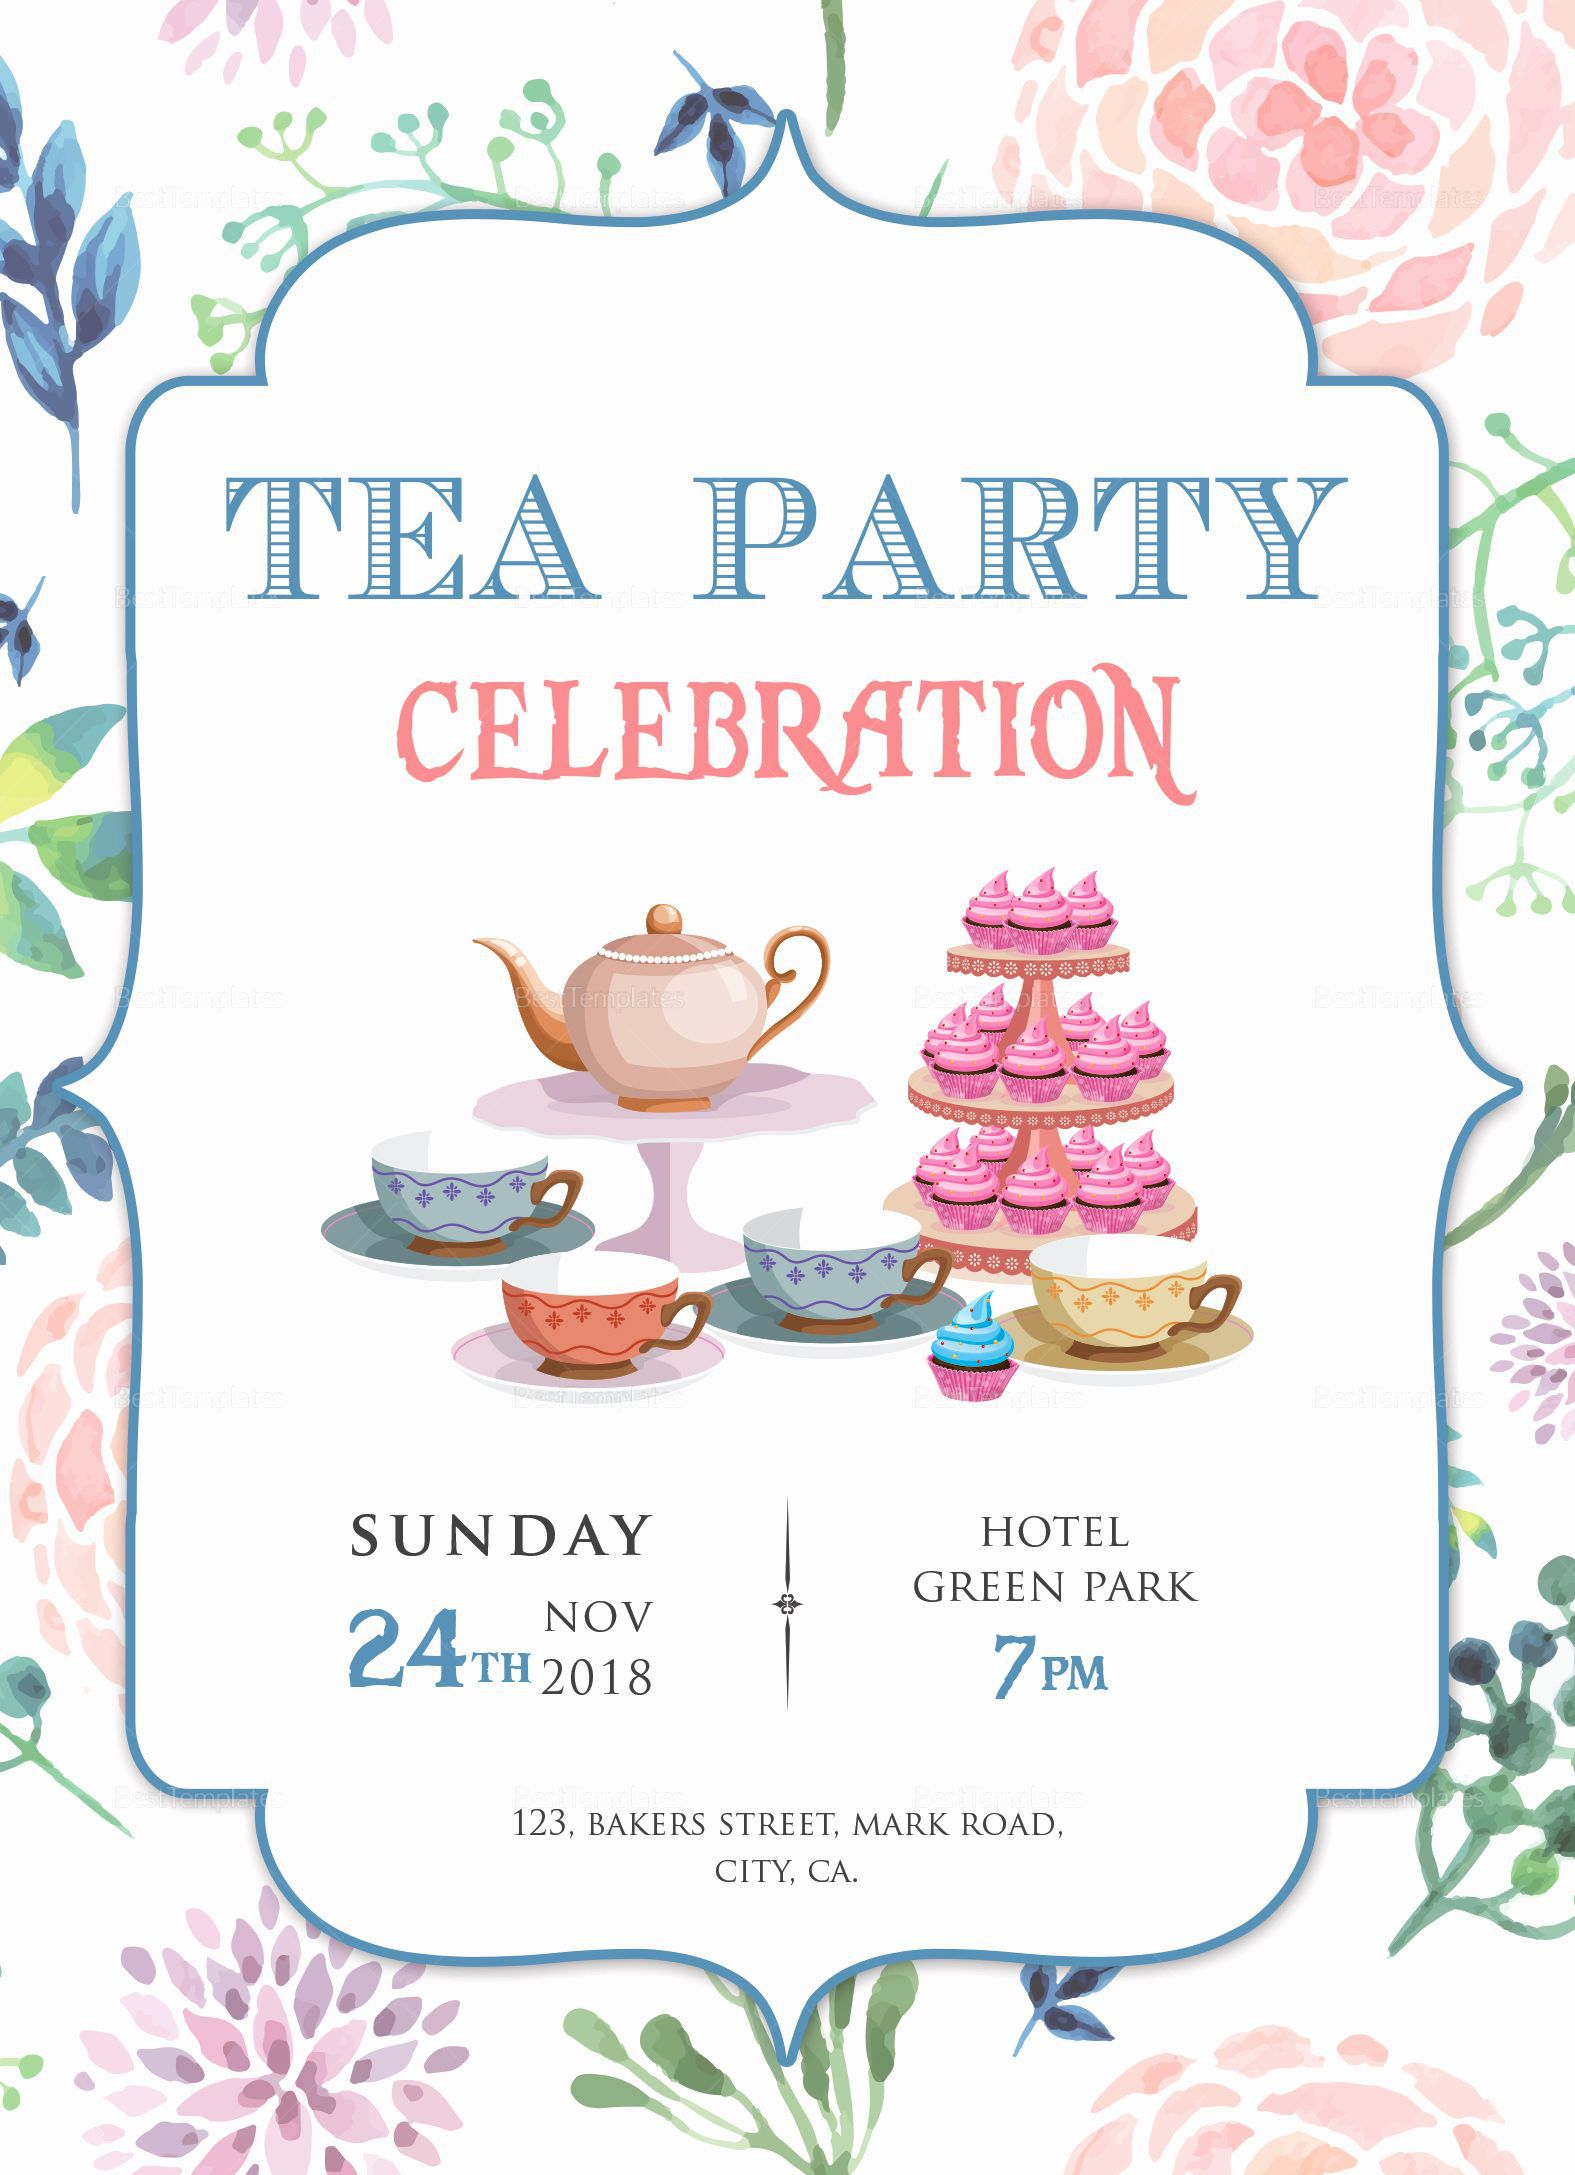 000 Simple Tea Party Invitation Template Sample  Templates High Free Download Bridal ShowerFull